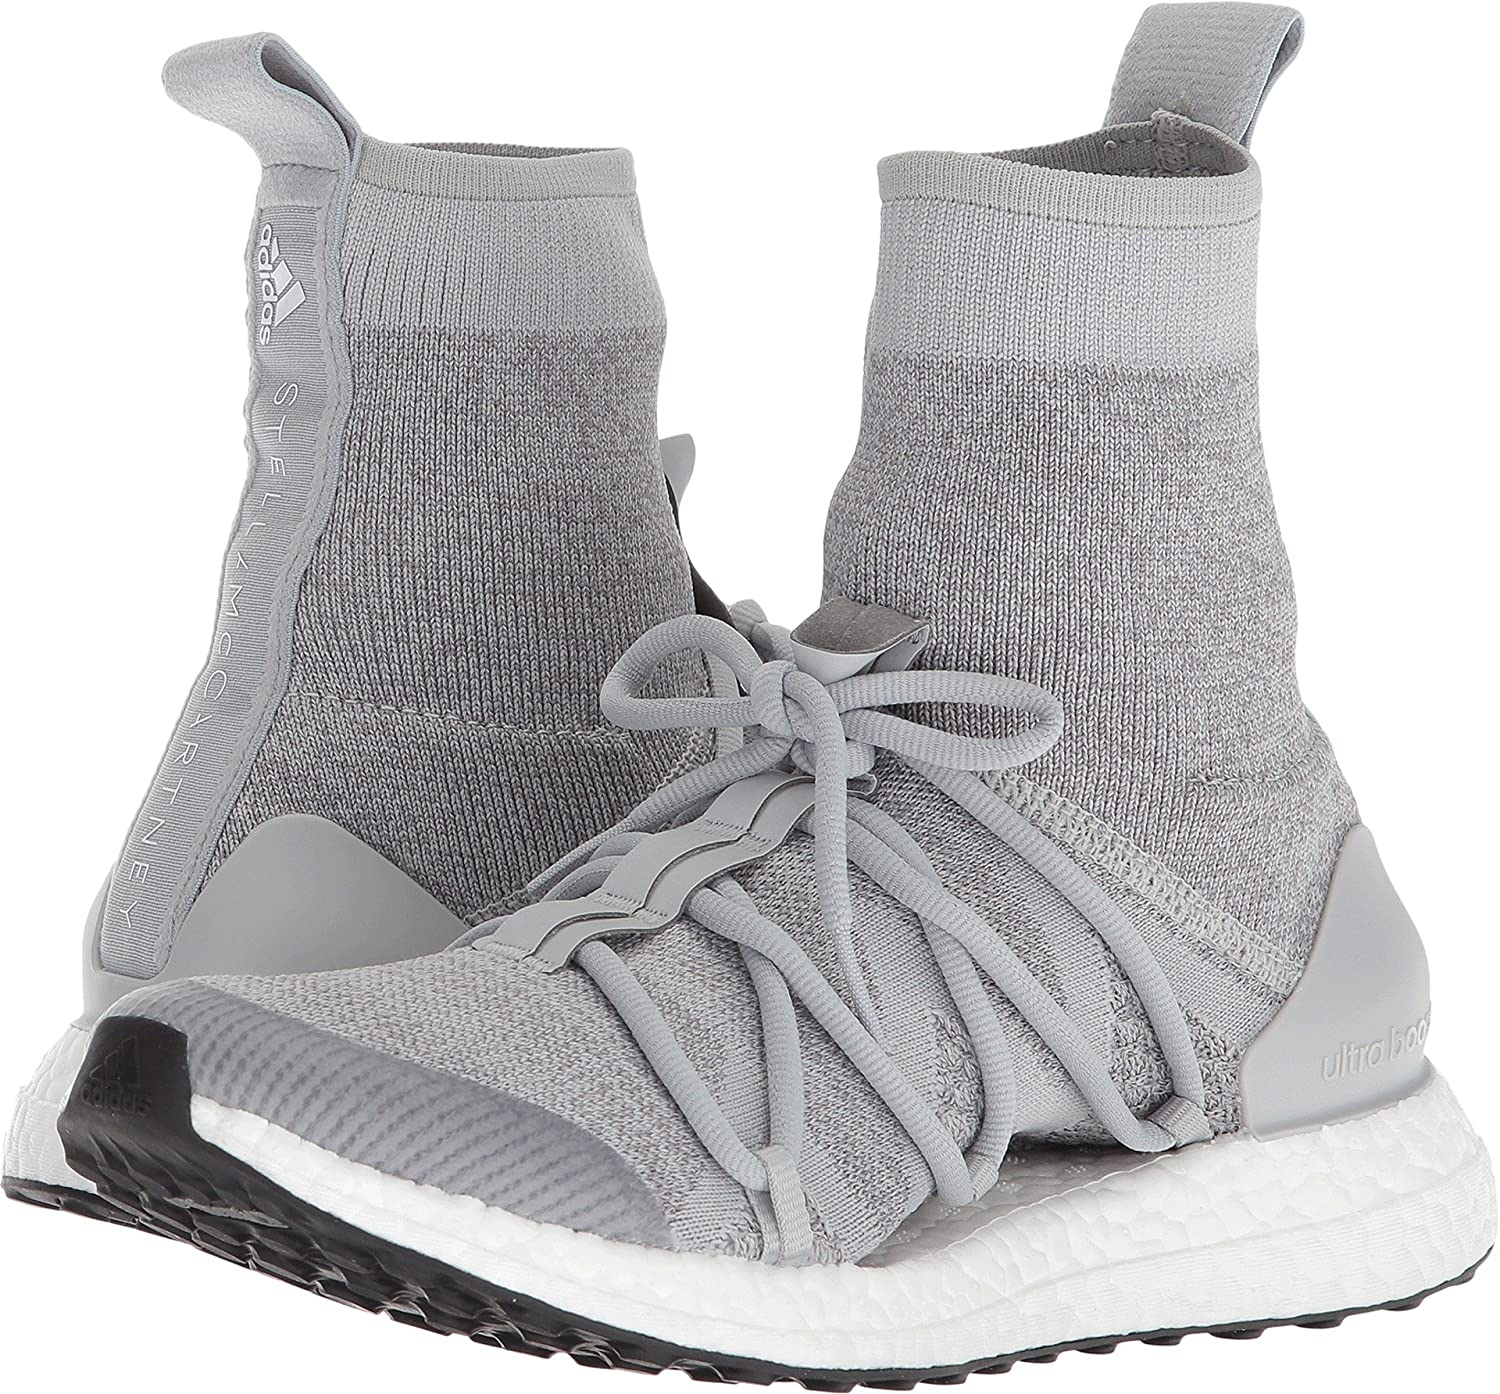 adidas by Stella McCartney Women's Ultraboost X Sneakers B078ZKKZDY 10 B(M) US|Stone/Core White/Eggshell/Grey/Smc